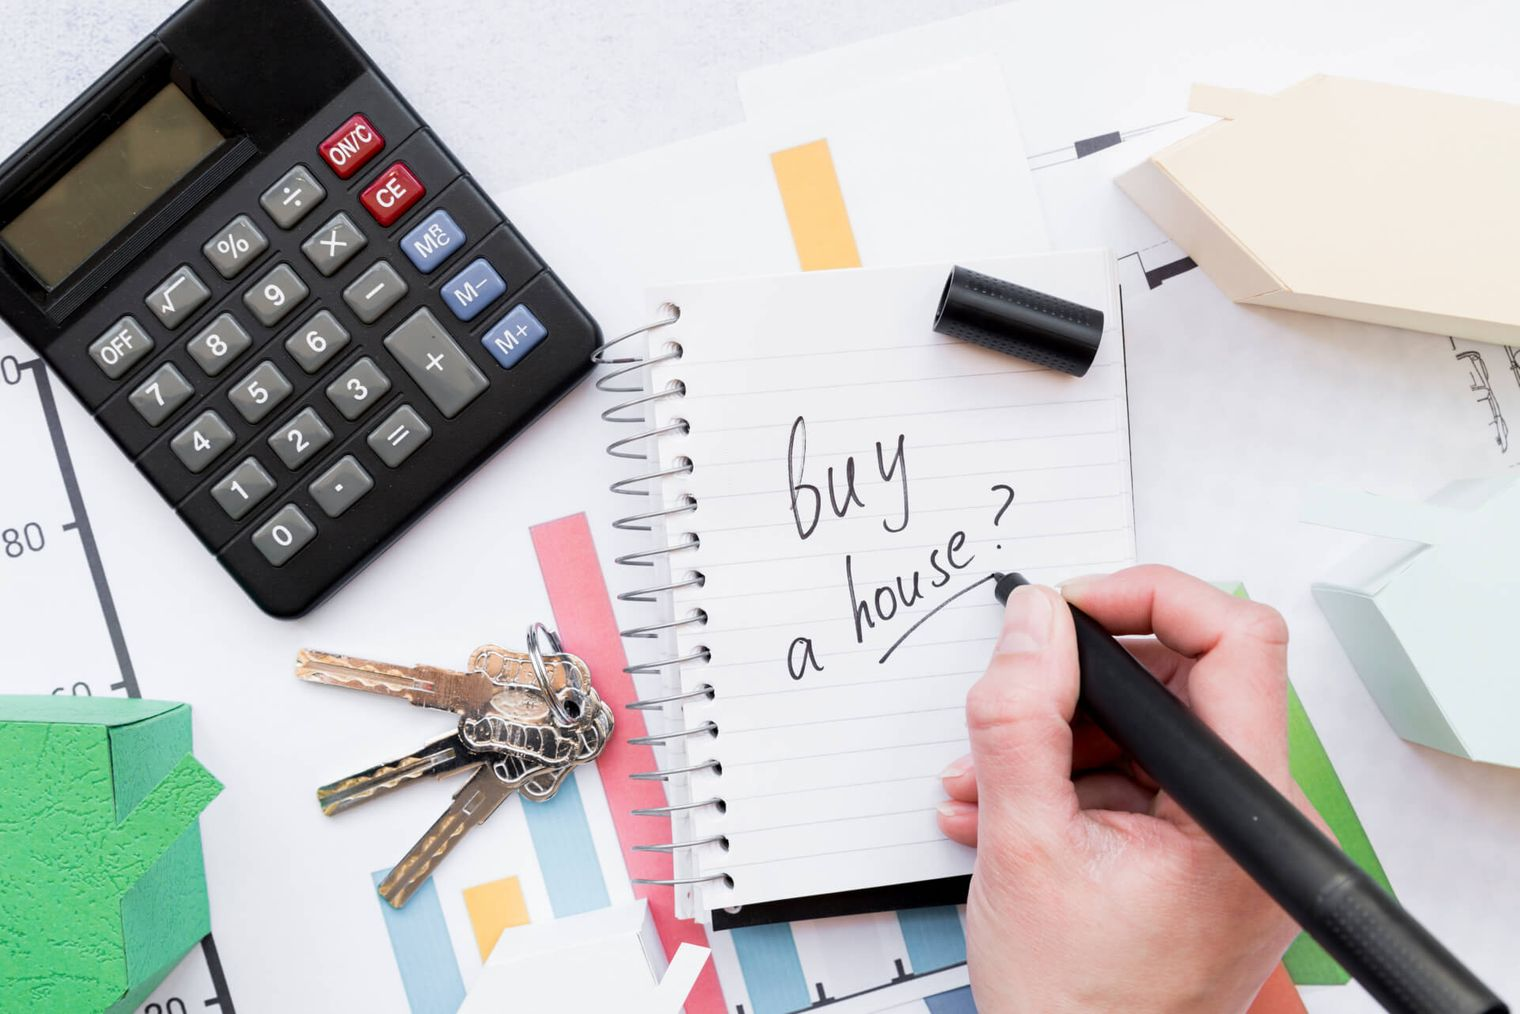 What first homebuyers should look for in a property